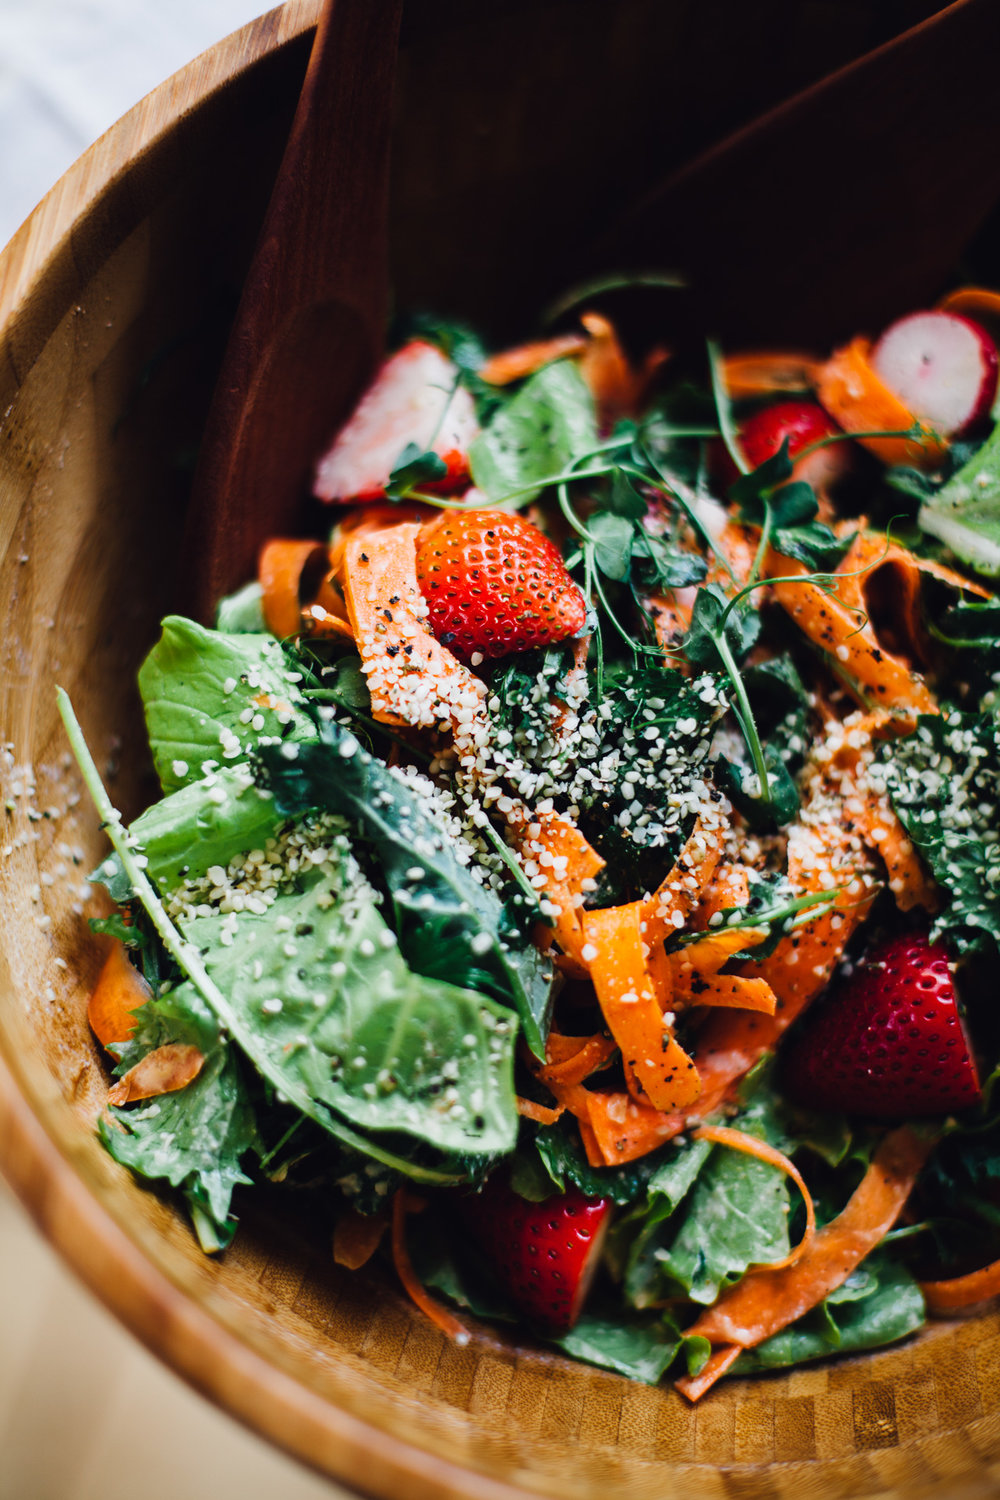 strawberry salad with spring greens and lemony hemp dressing | vegan recipe via willfrolicforfood.com